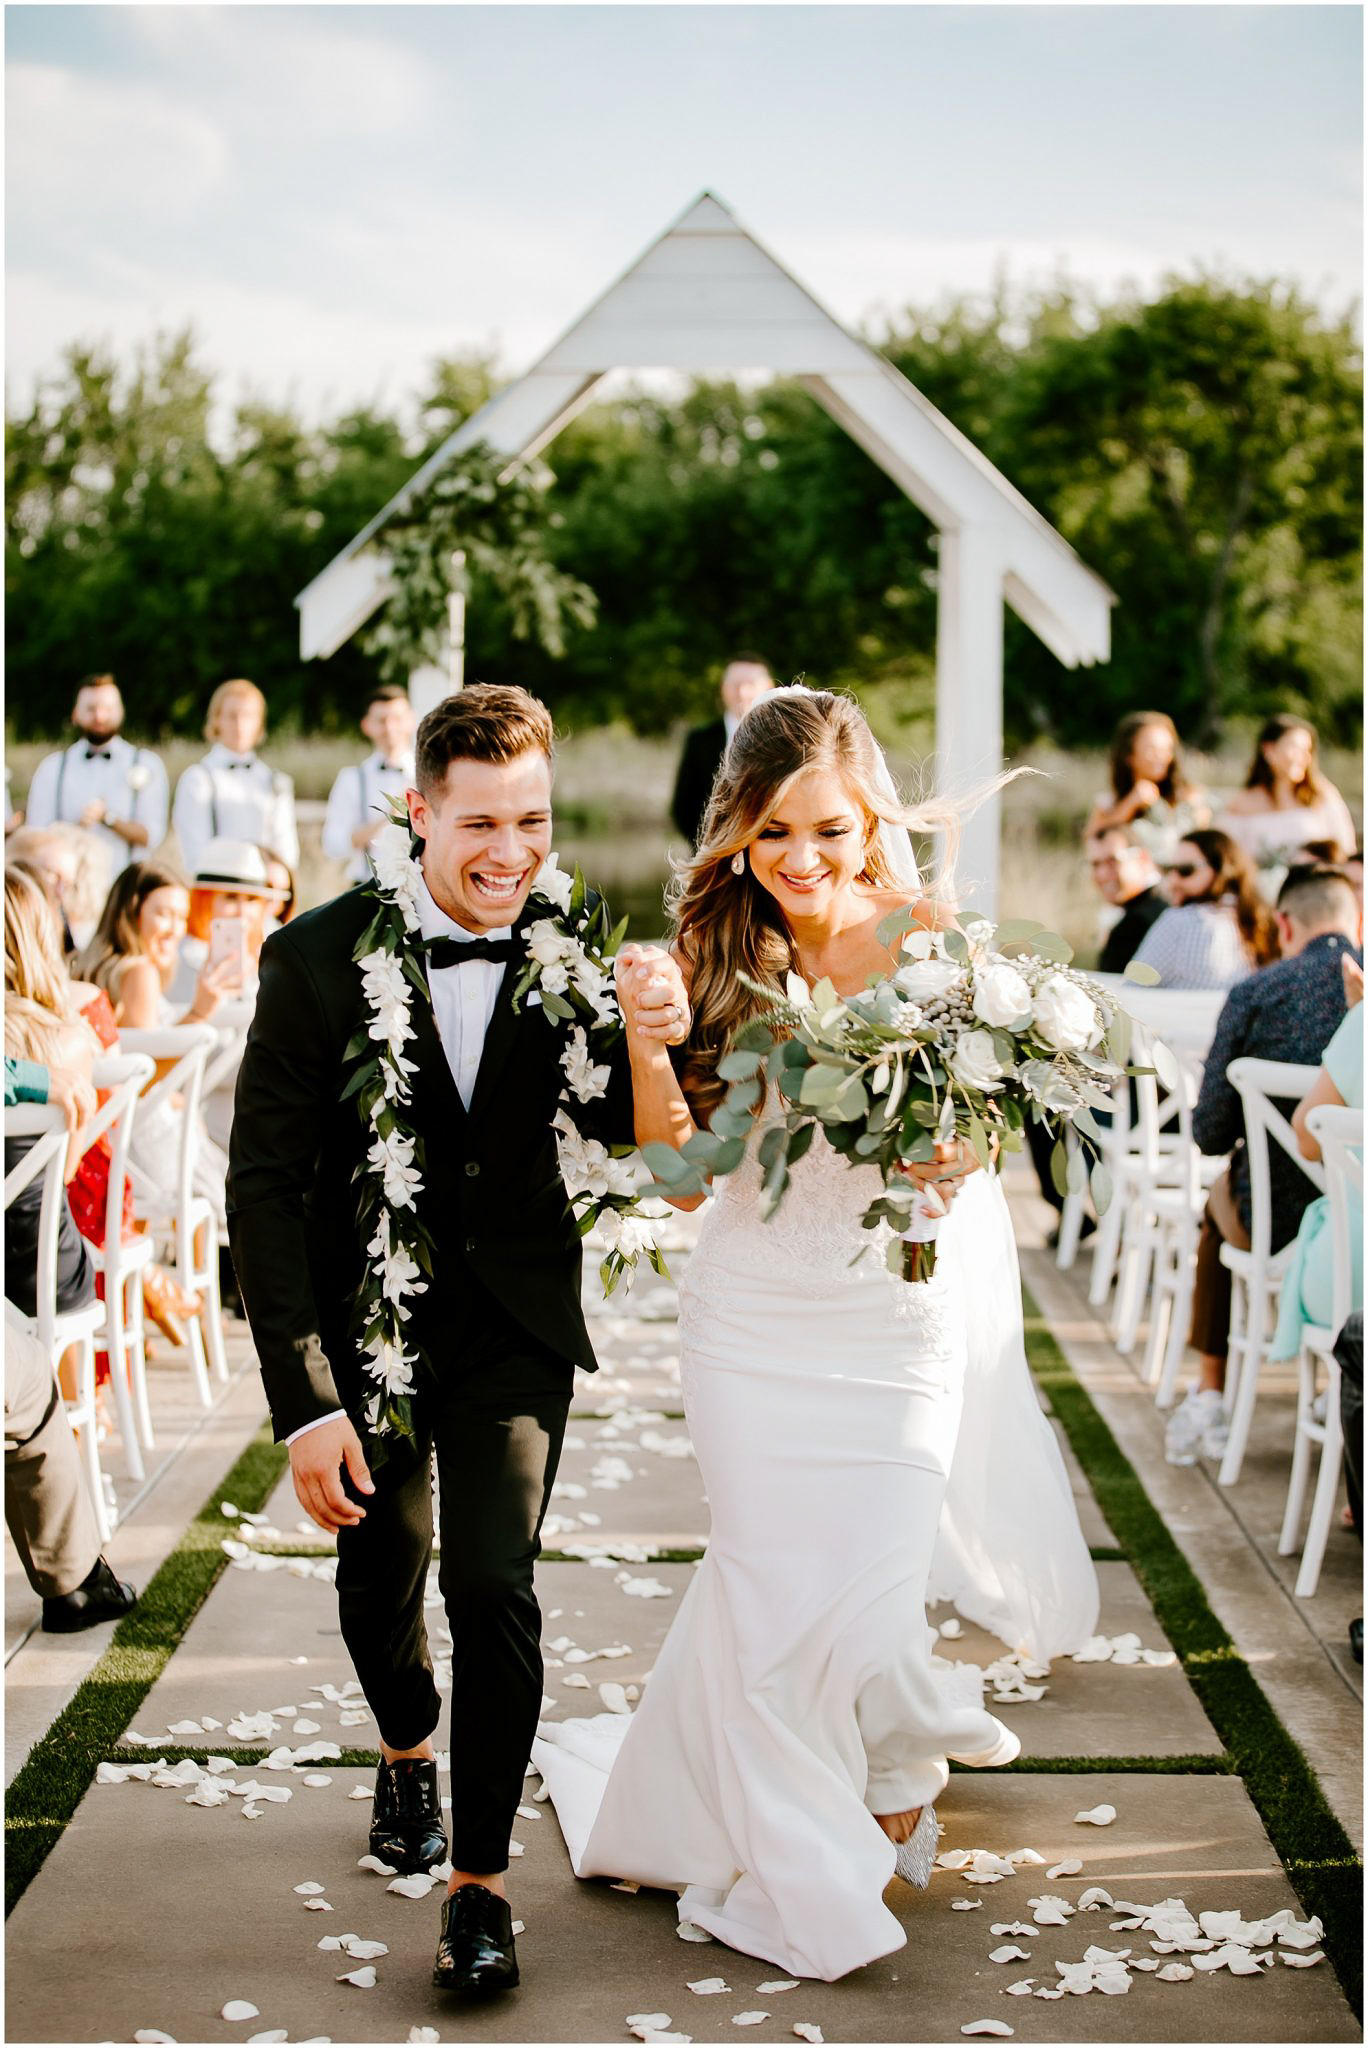 couple walking down aisle after ceremony in outdoor setting wearing leas